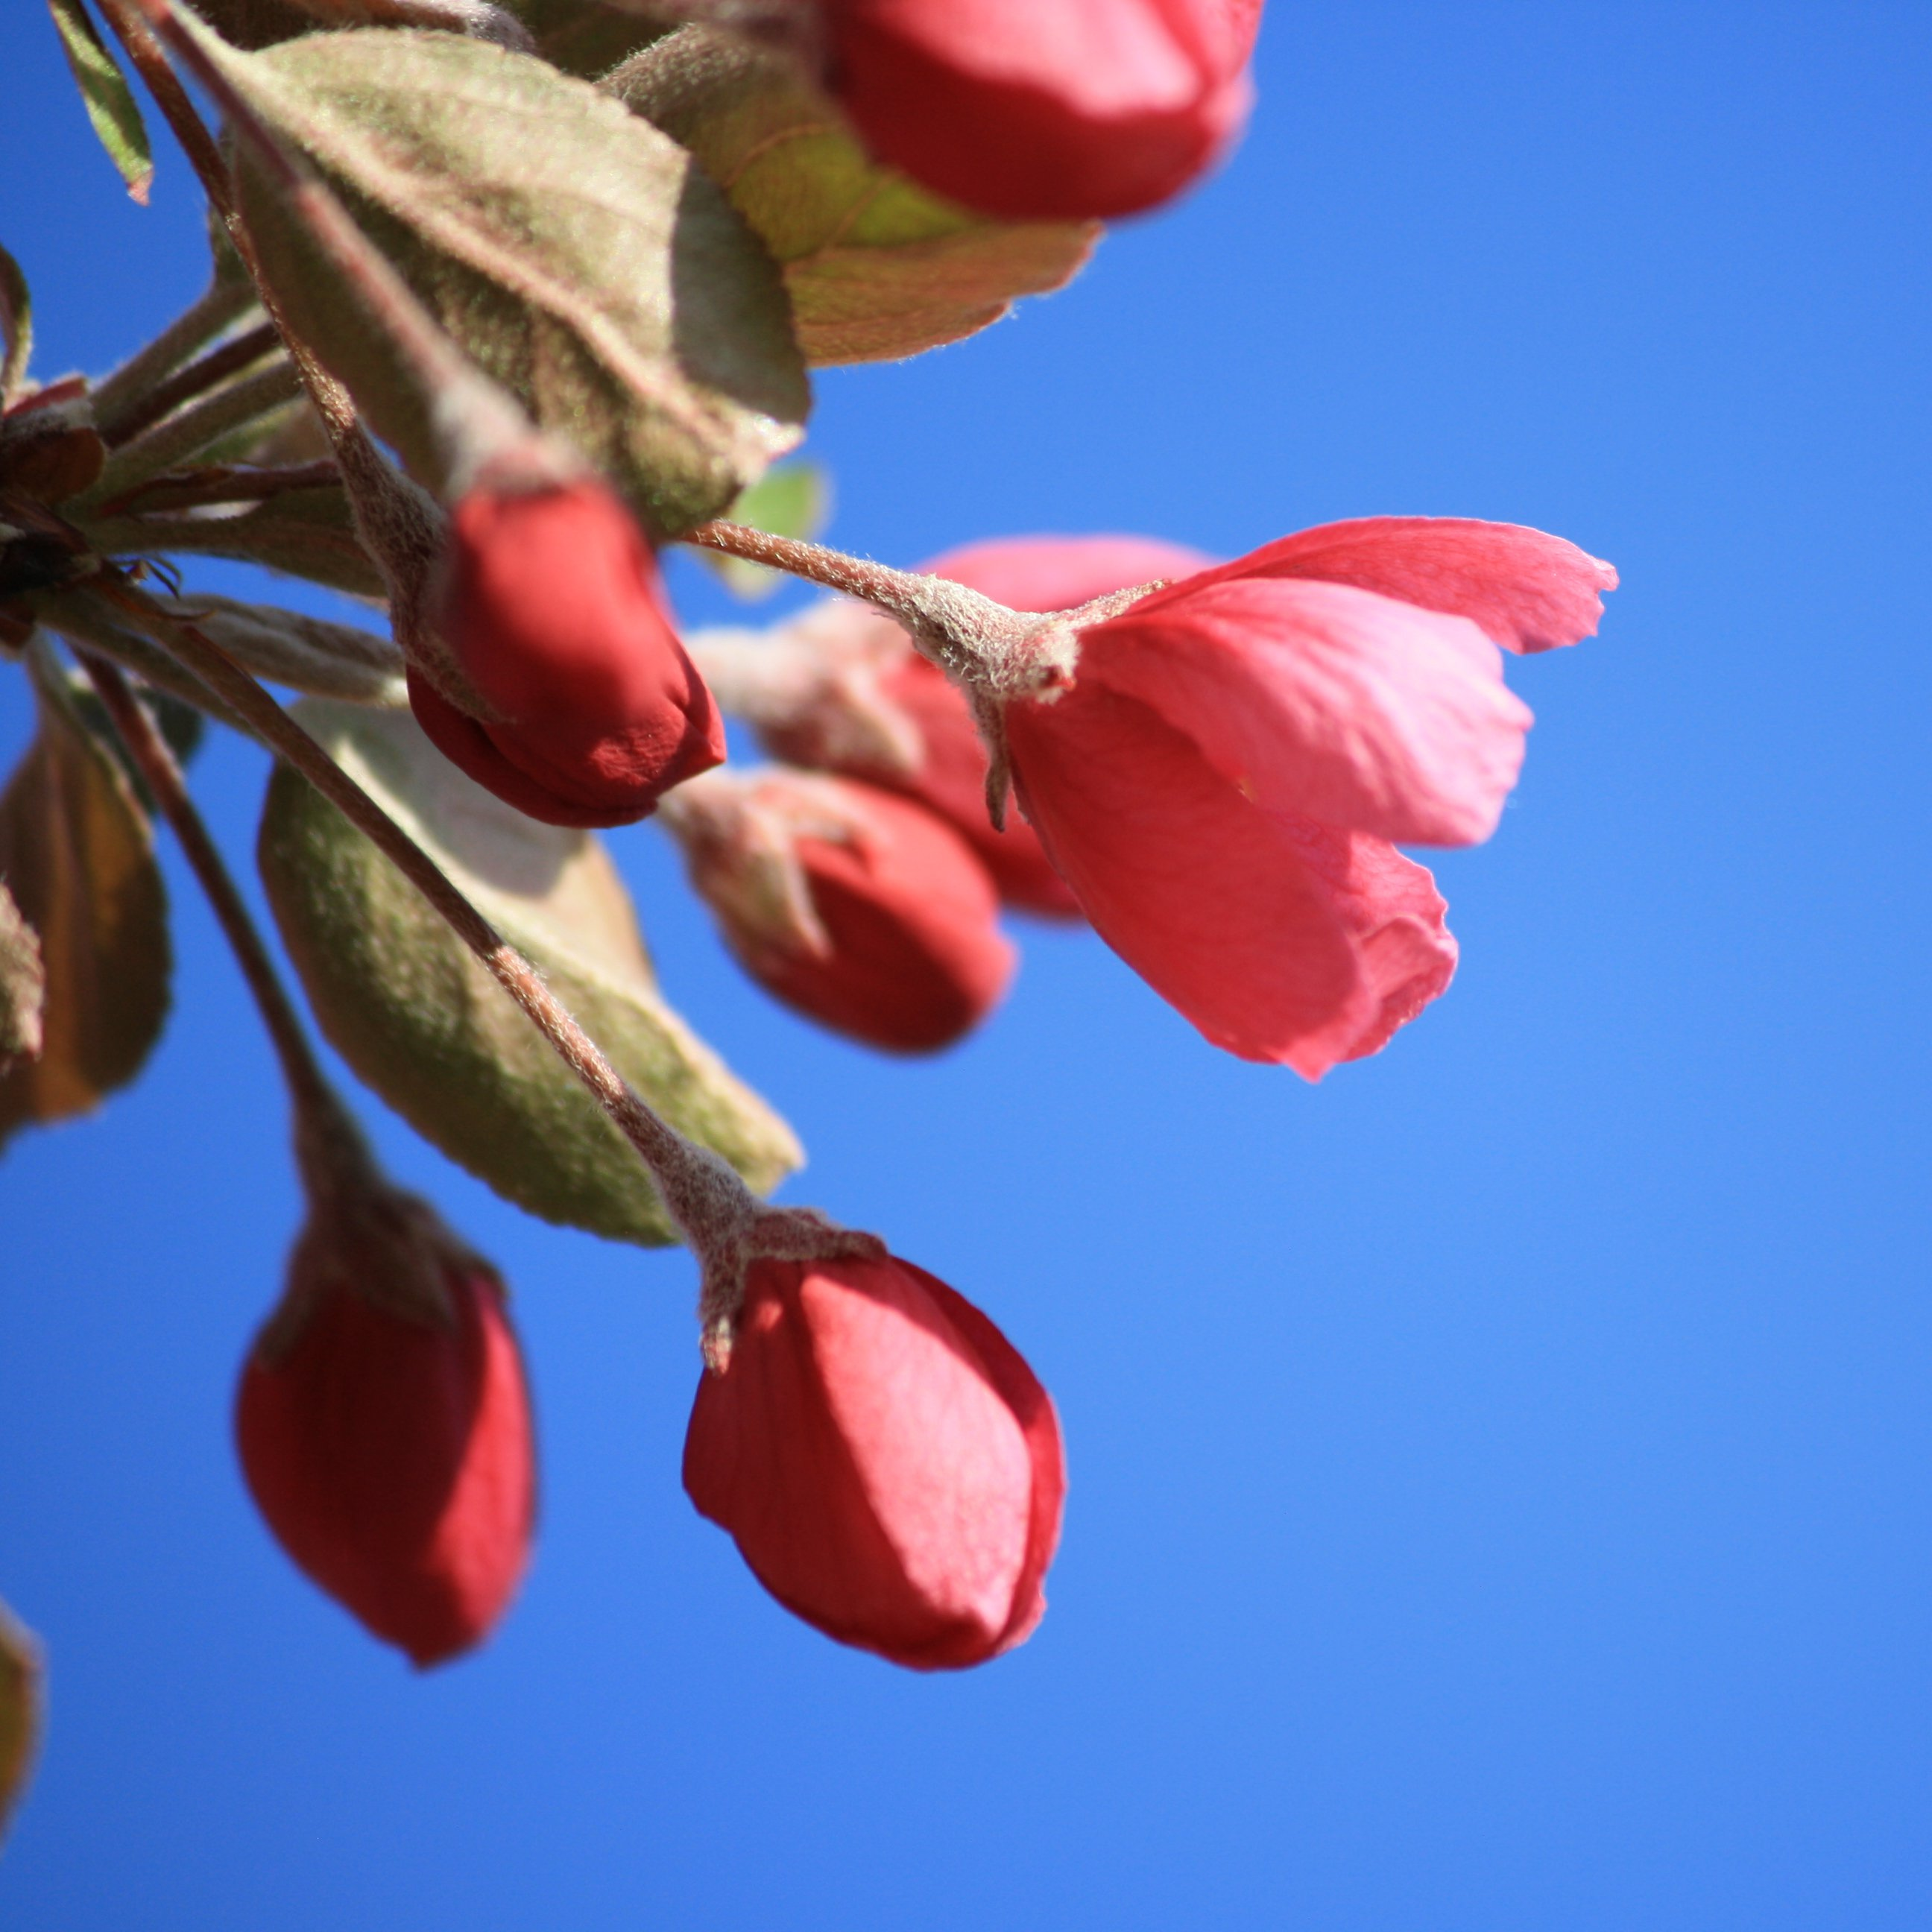 Red Flower Bud Starting to Blossom Picture | Free Photograph ...